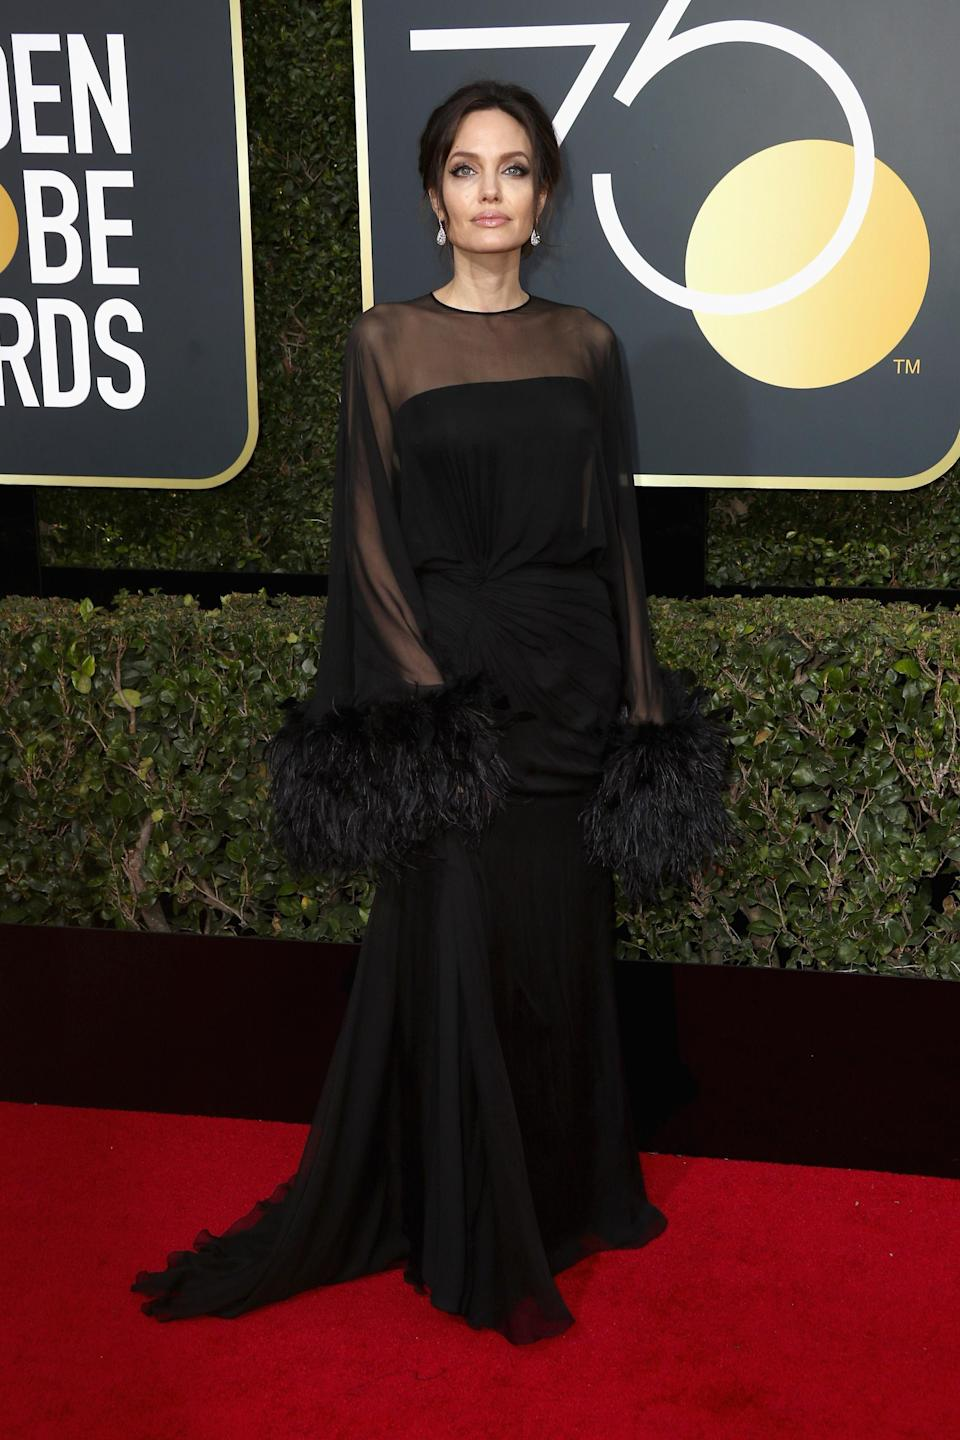 <p>For the 2018 Golden Globe Awards back in January, Angelina Jolie kick-started the year right in a sheer Atelier Versace gown and Barollo Italy shoes. A matching Stuart Weitzman clutch finished the ensemble. <em>[Photo: Getty]</em> </p>